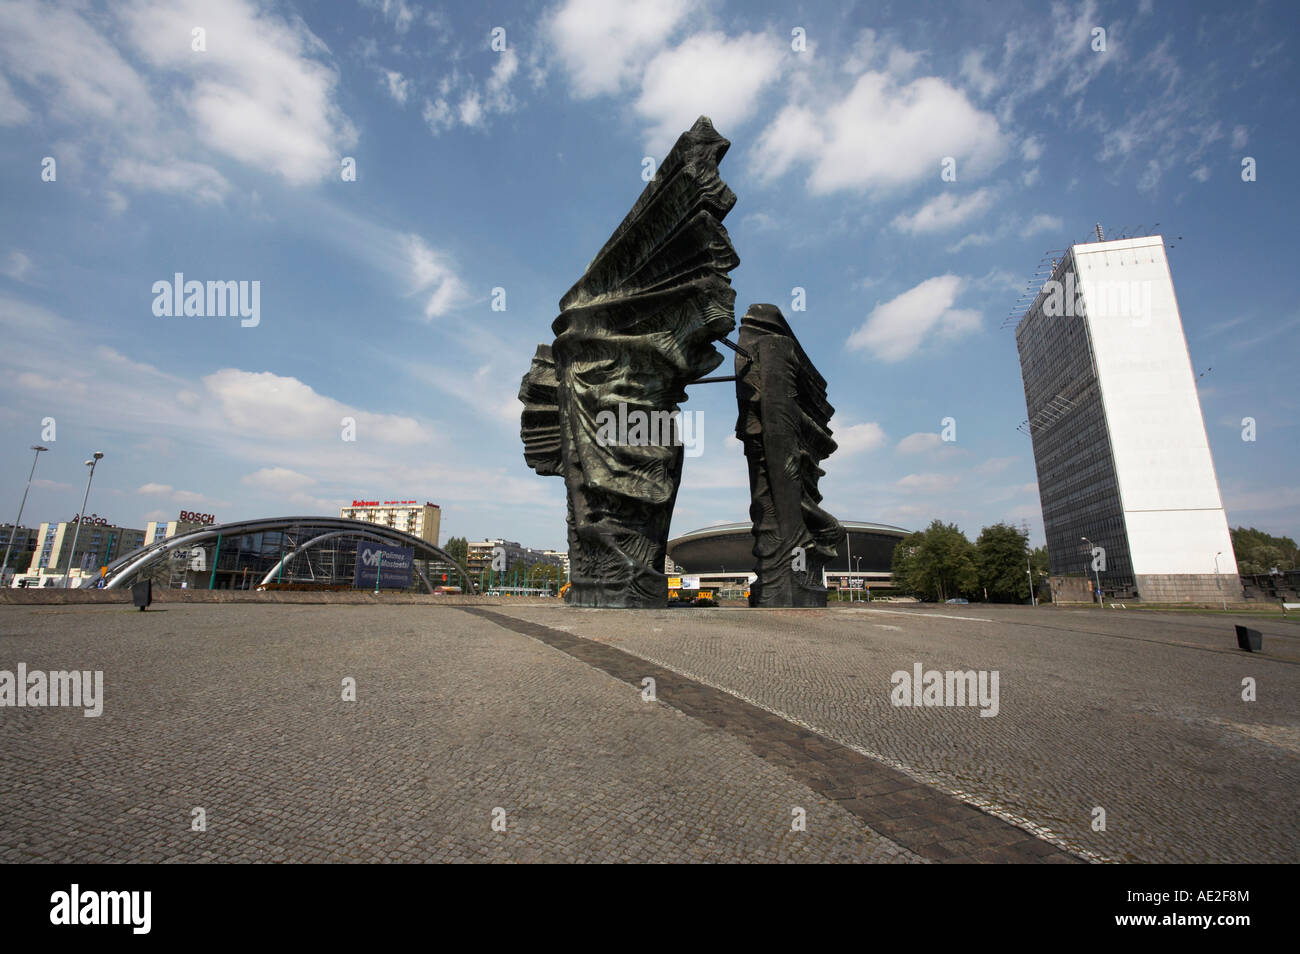 The monument to the Silesian insurgents in Katowice Poland Stock Photo